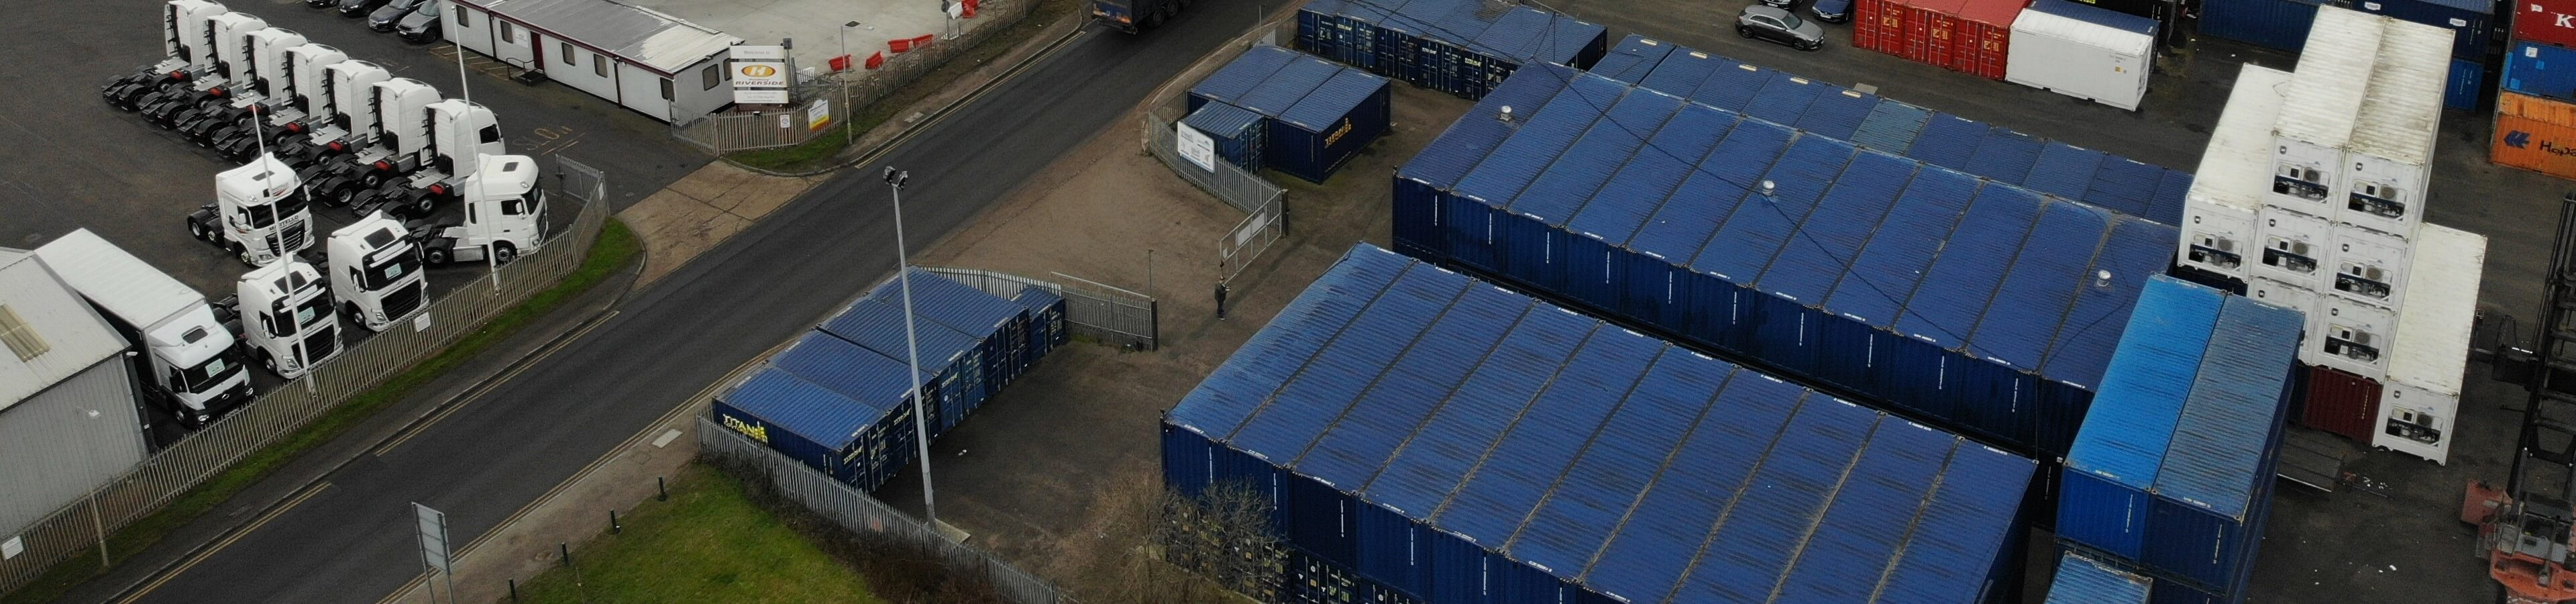 West Thurrock Self Storage header image | TITAN Containers